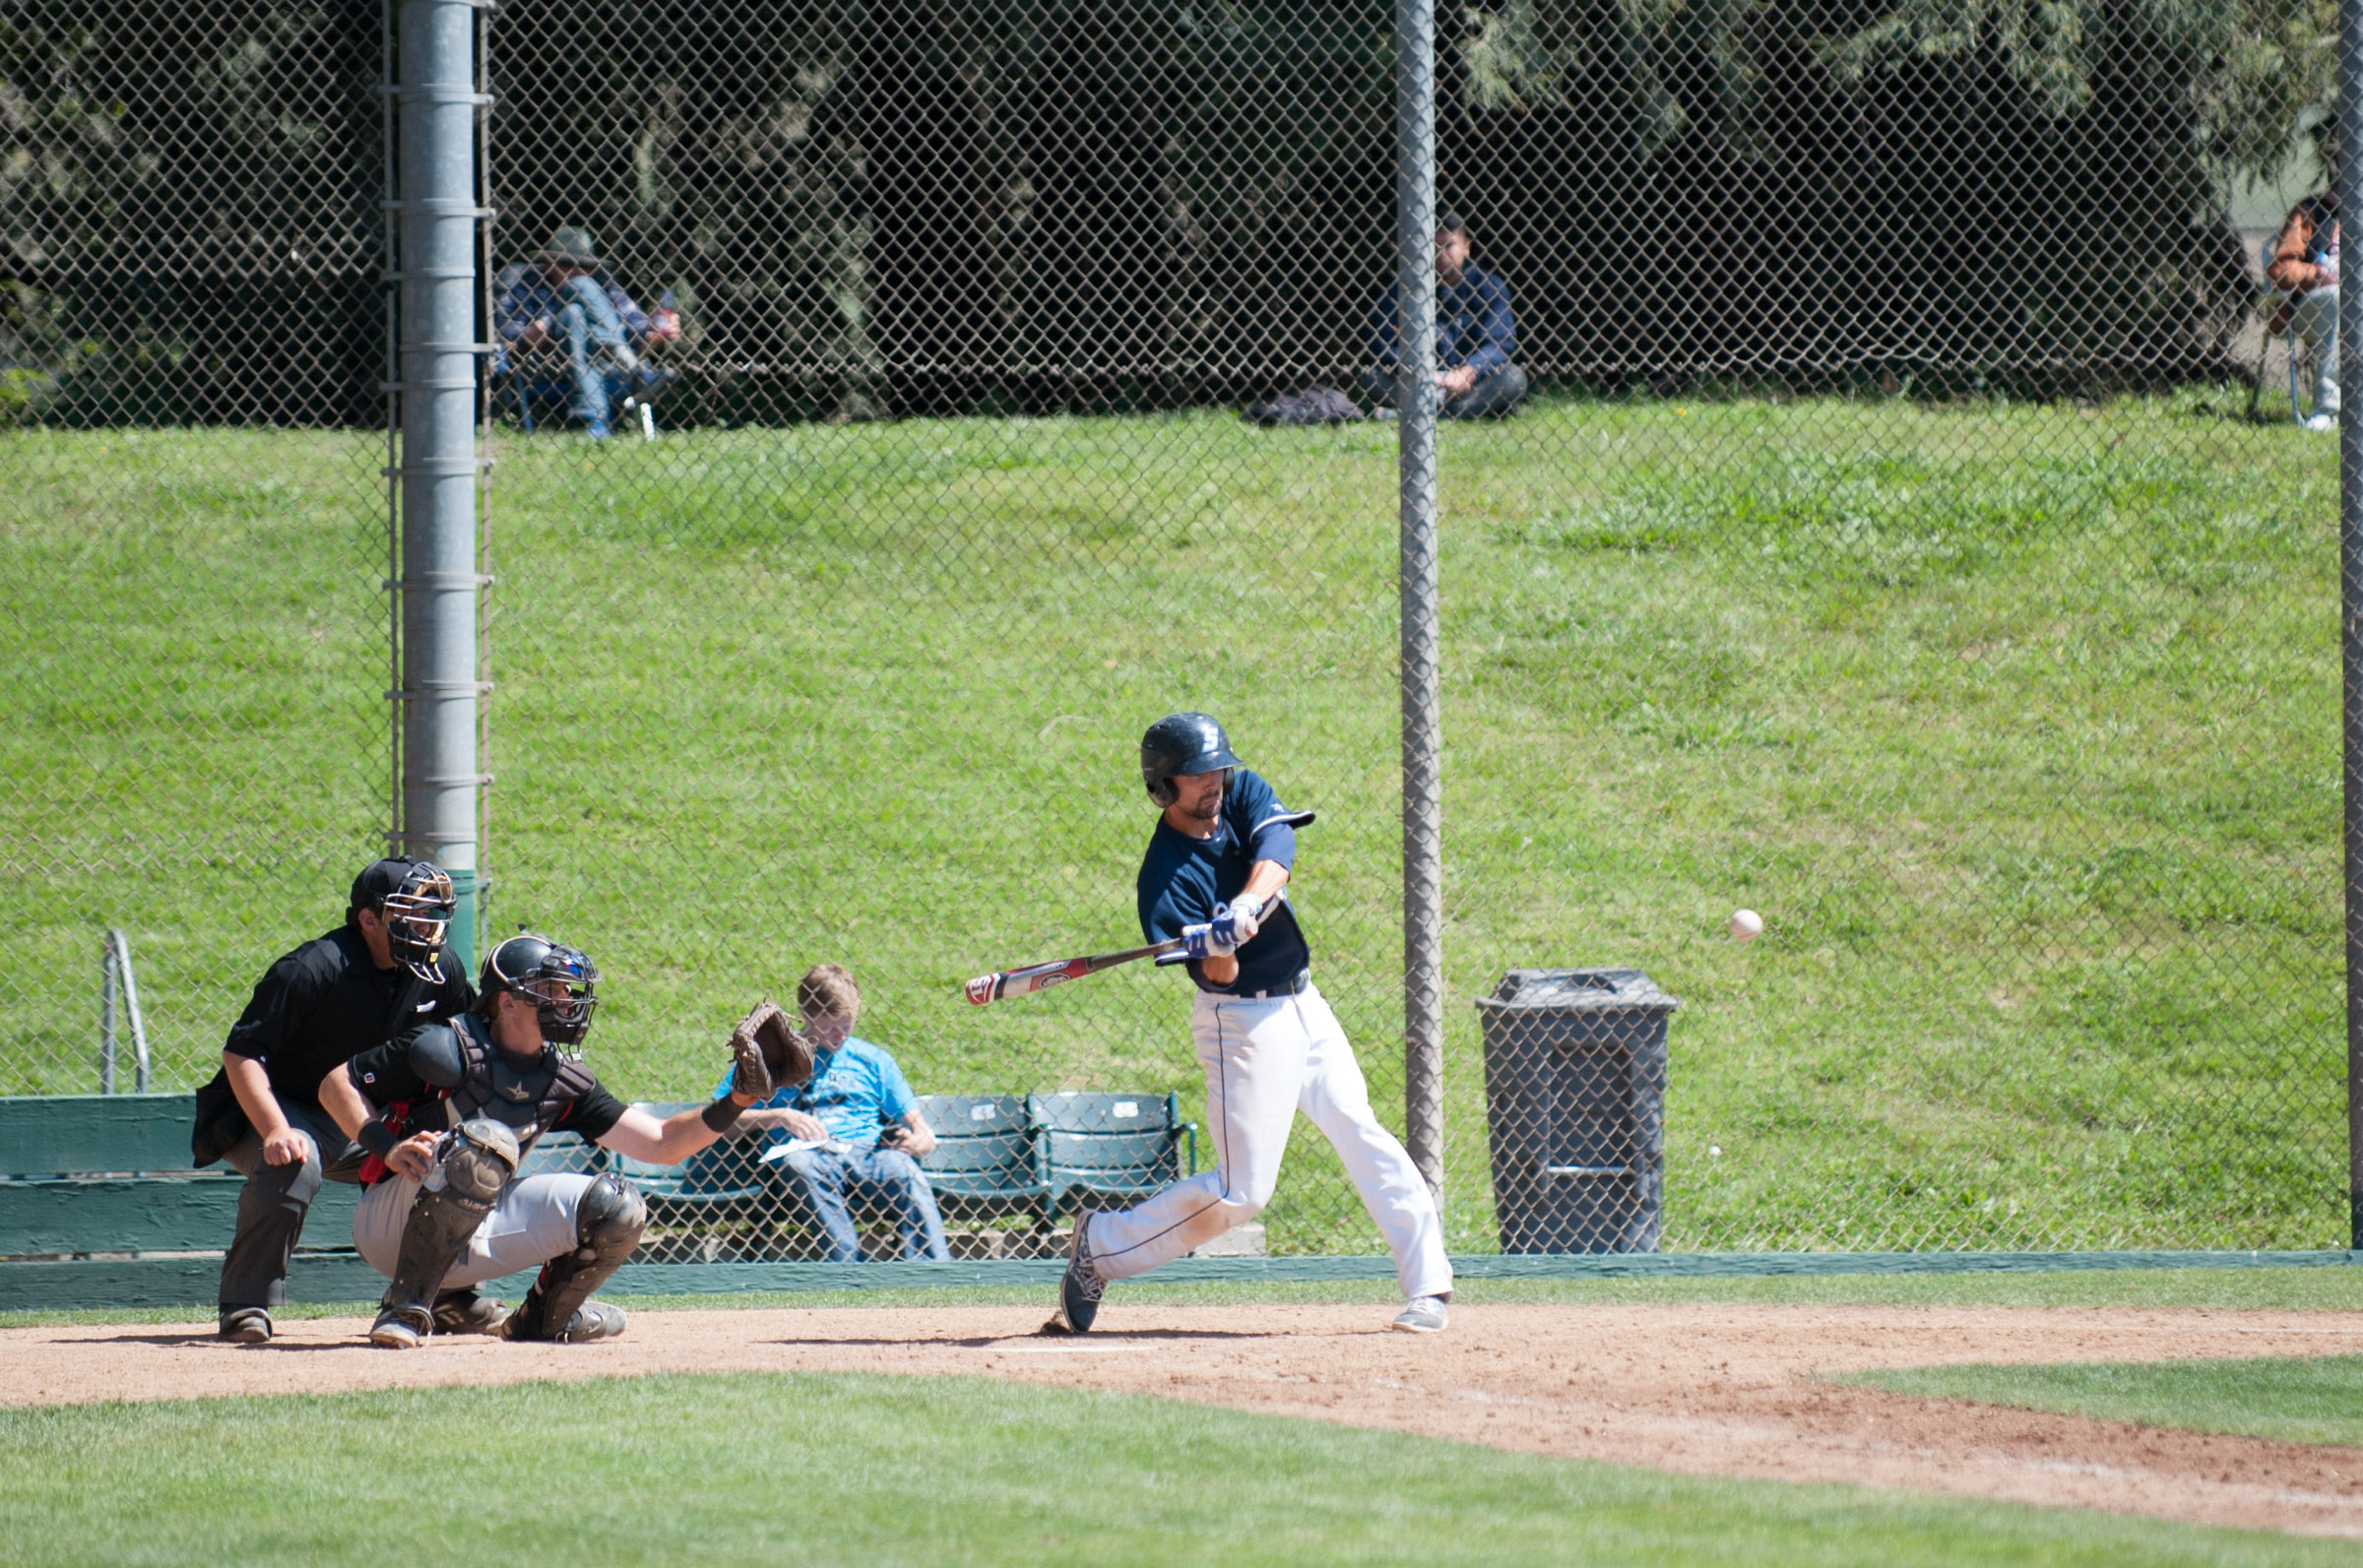 STAR // Connor Gibson   Senior infielder Jourdan Weiks at the plate moments before making contact.